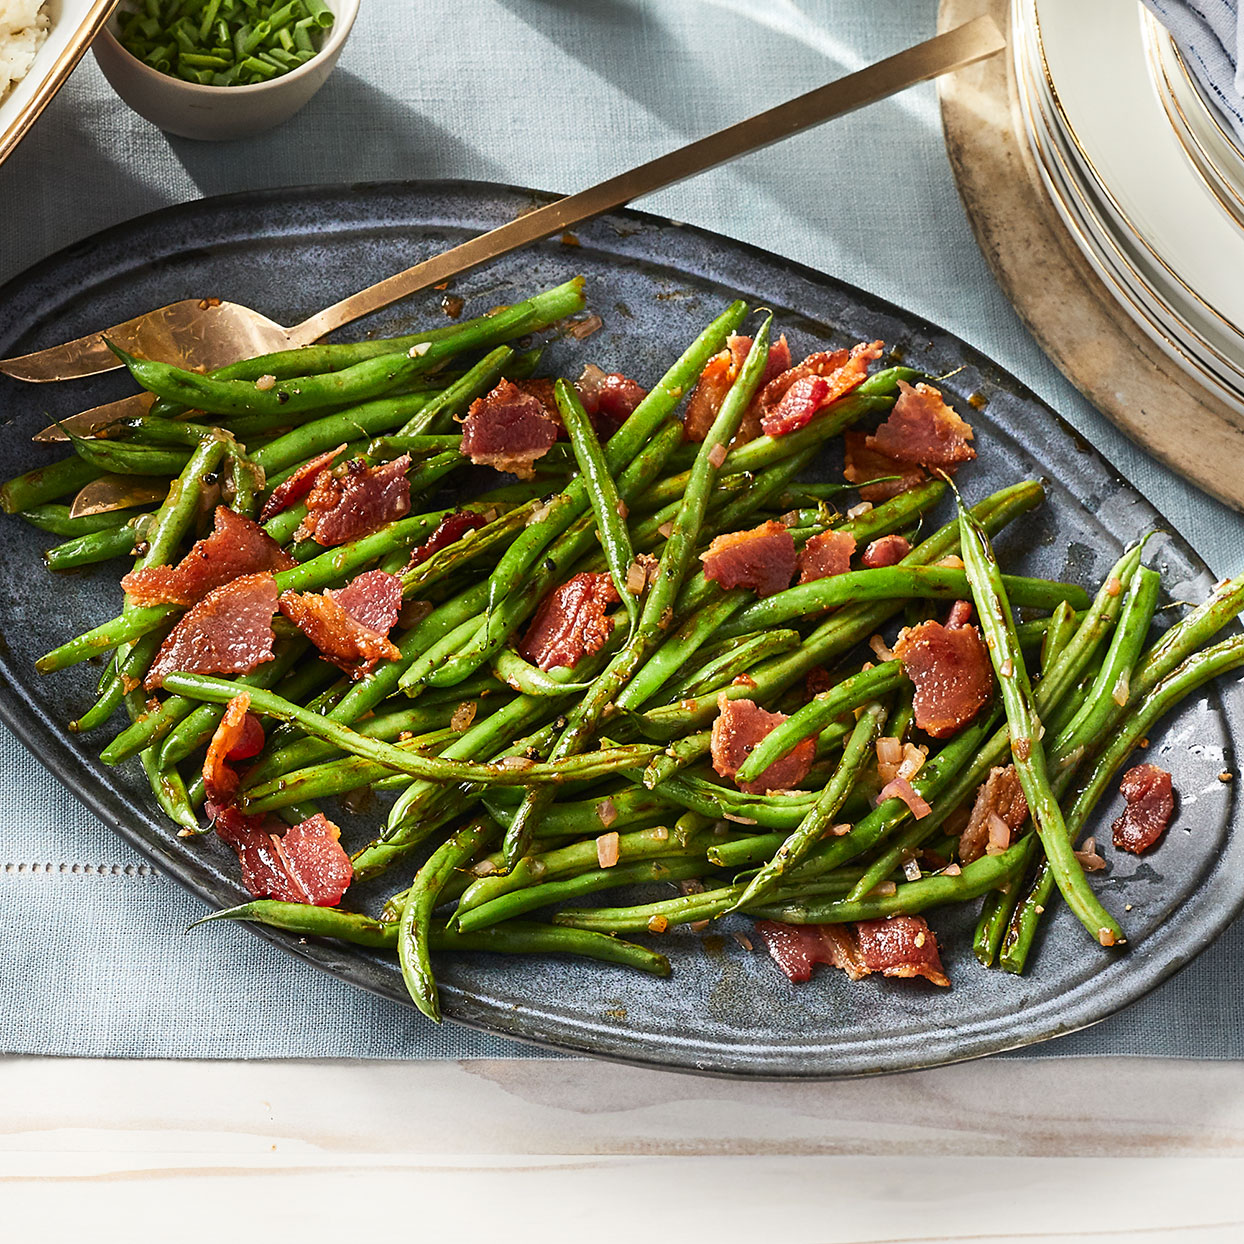 Cooking bacon and green beans on a sheet pan together simplifies holiday meal prep. Red-wine vinegar and lemon juice provide a balanced, bright flavor.